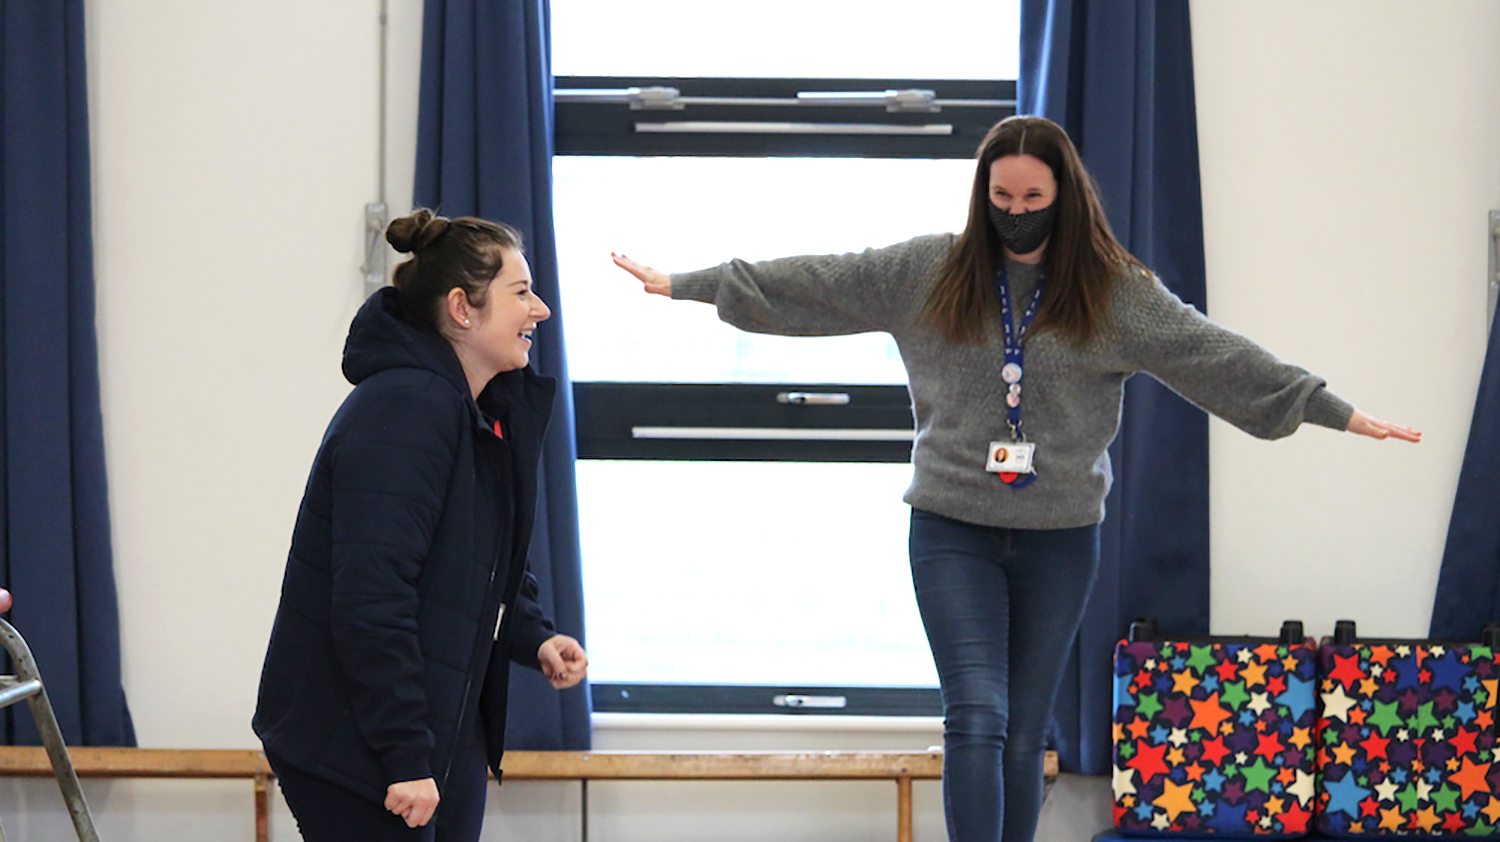 Our support has given Miss Cooper new confidence